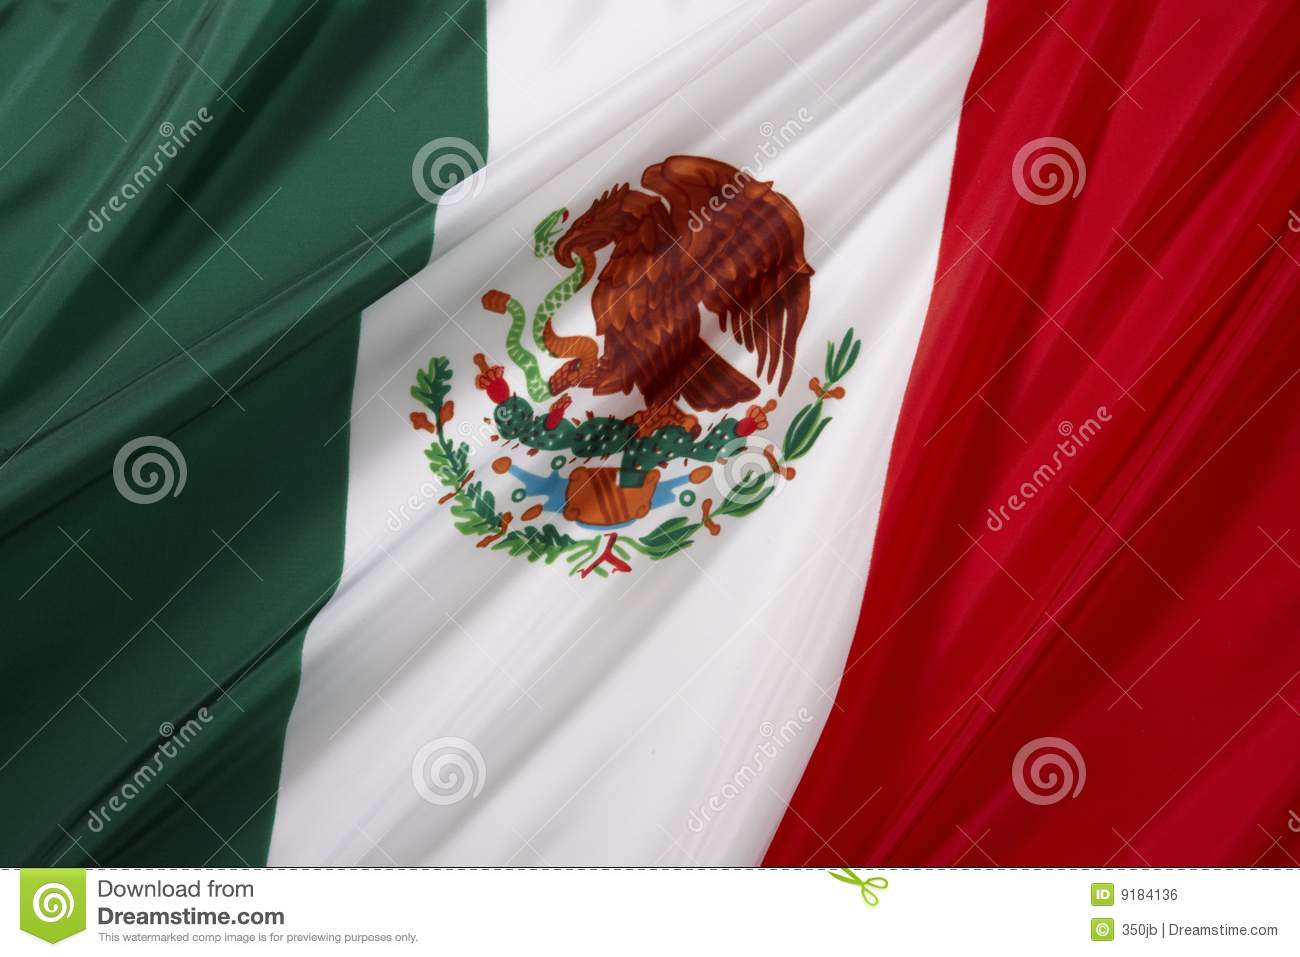 mexico stock photos images u0026 pictures 143 408 images